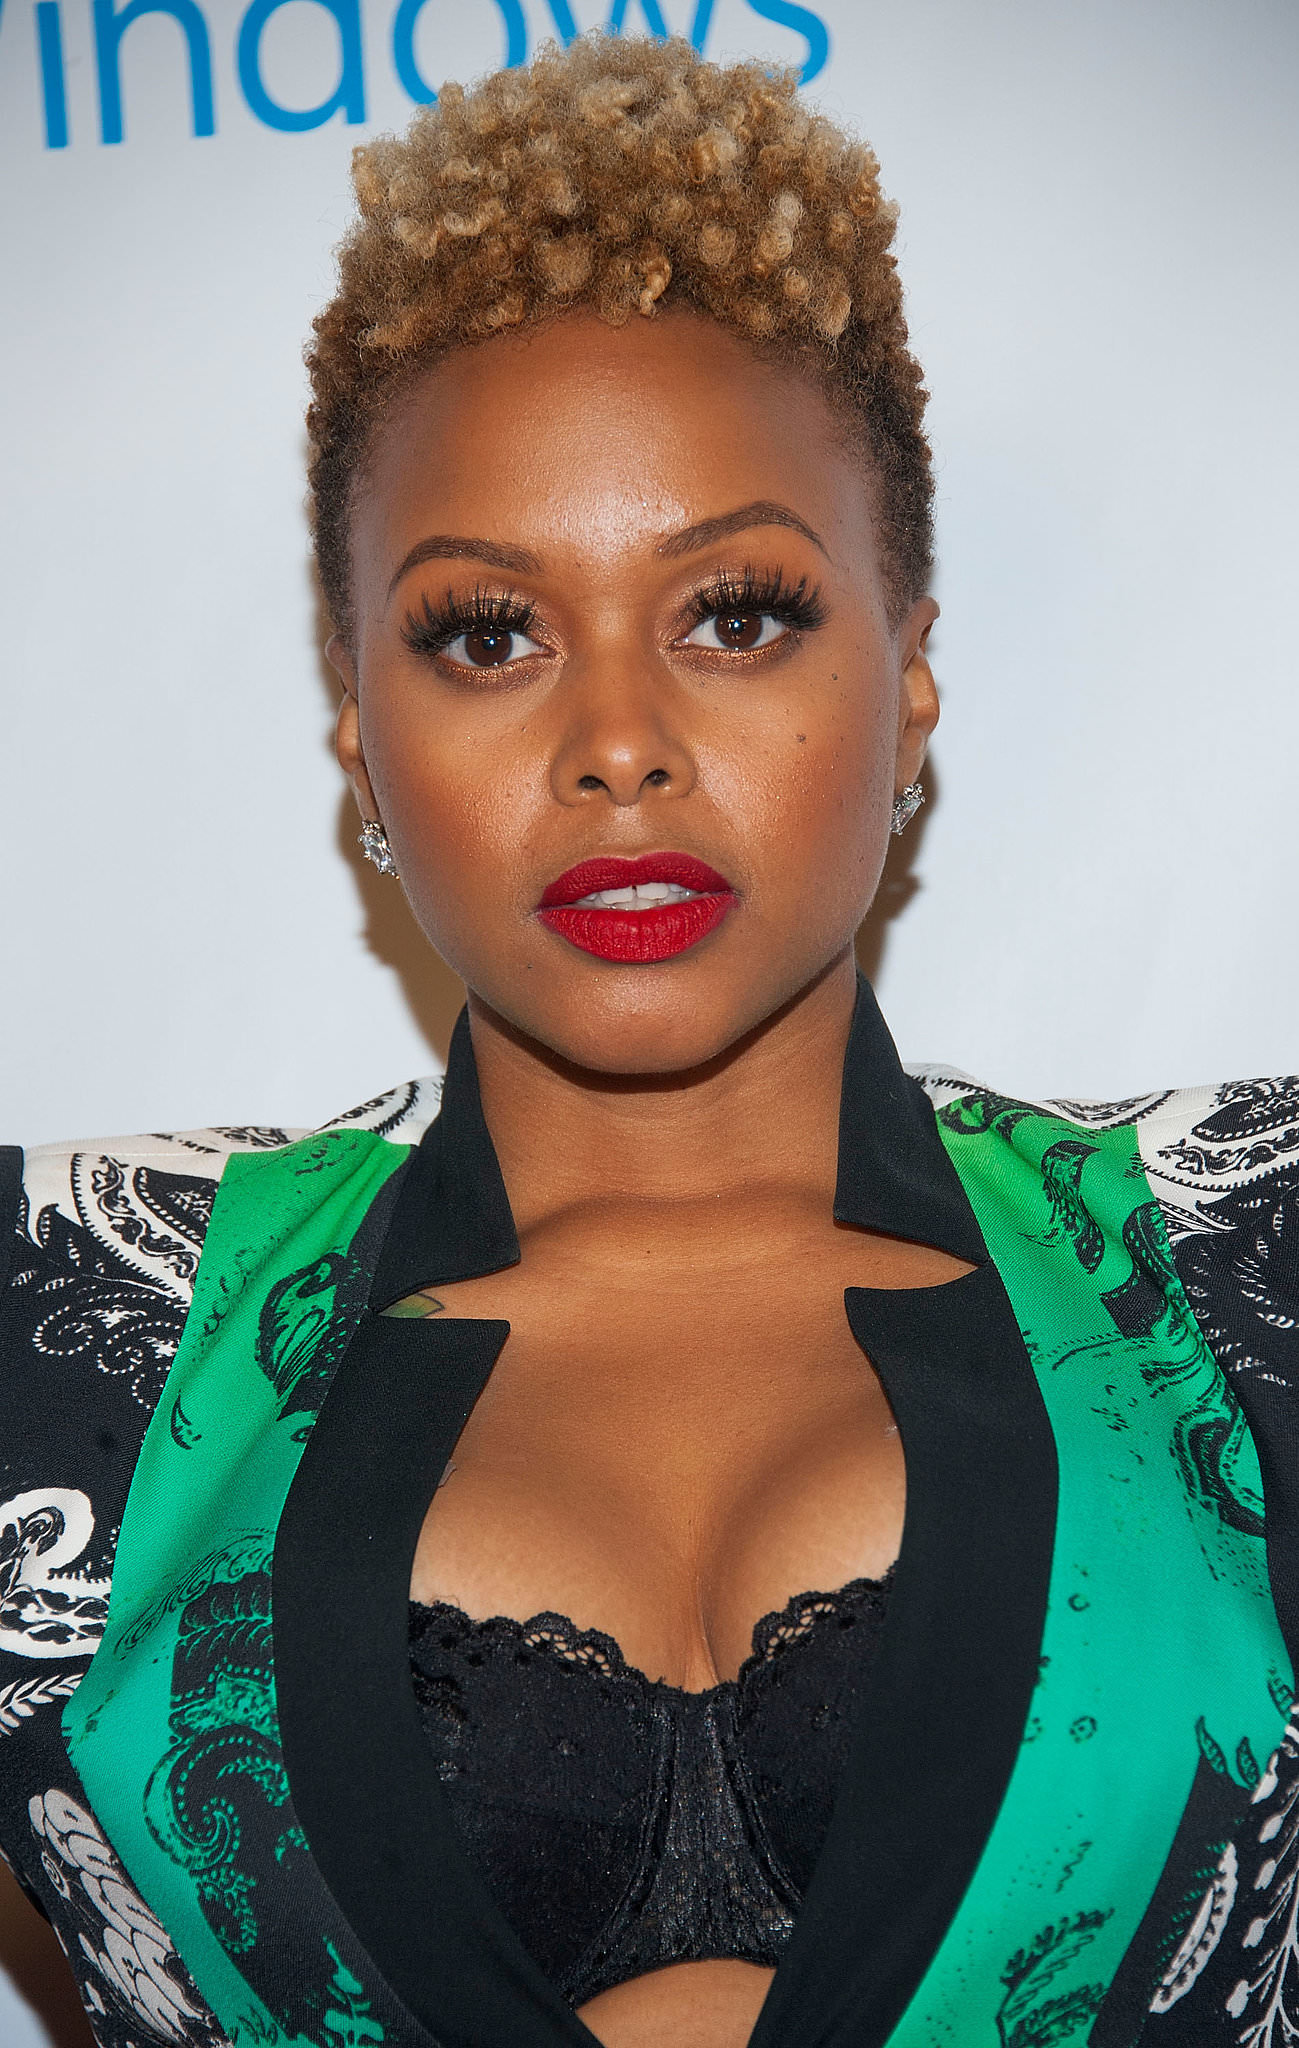 Chrisette Michelle The Grammy